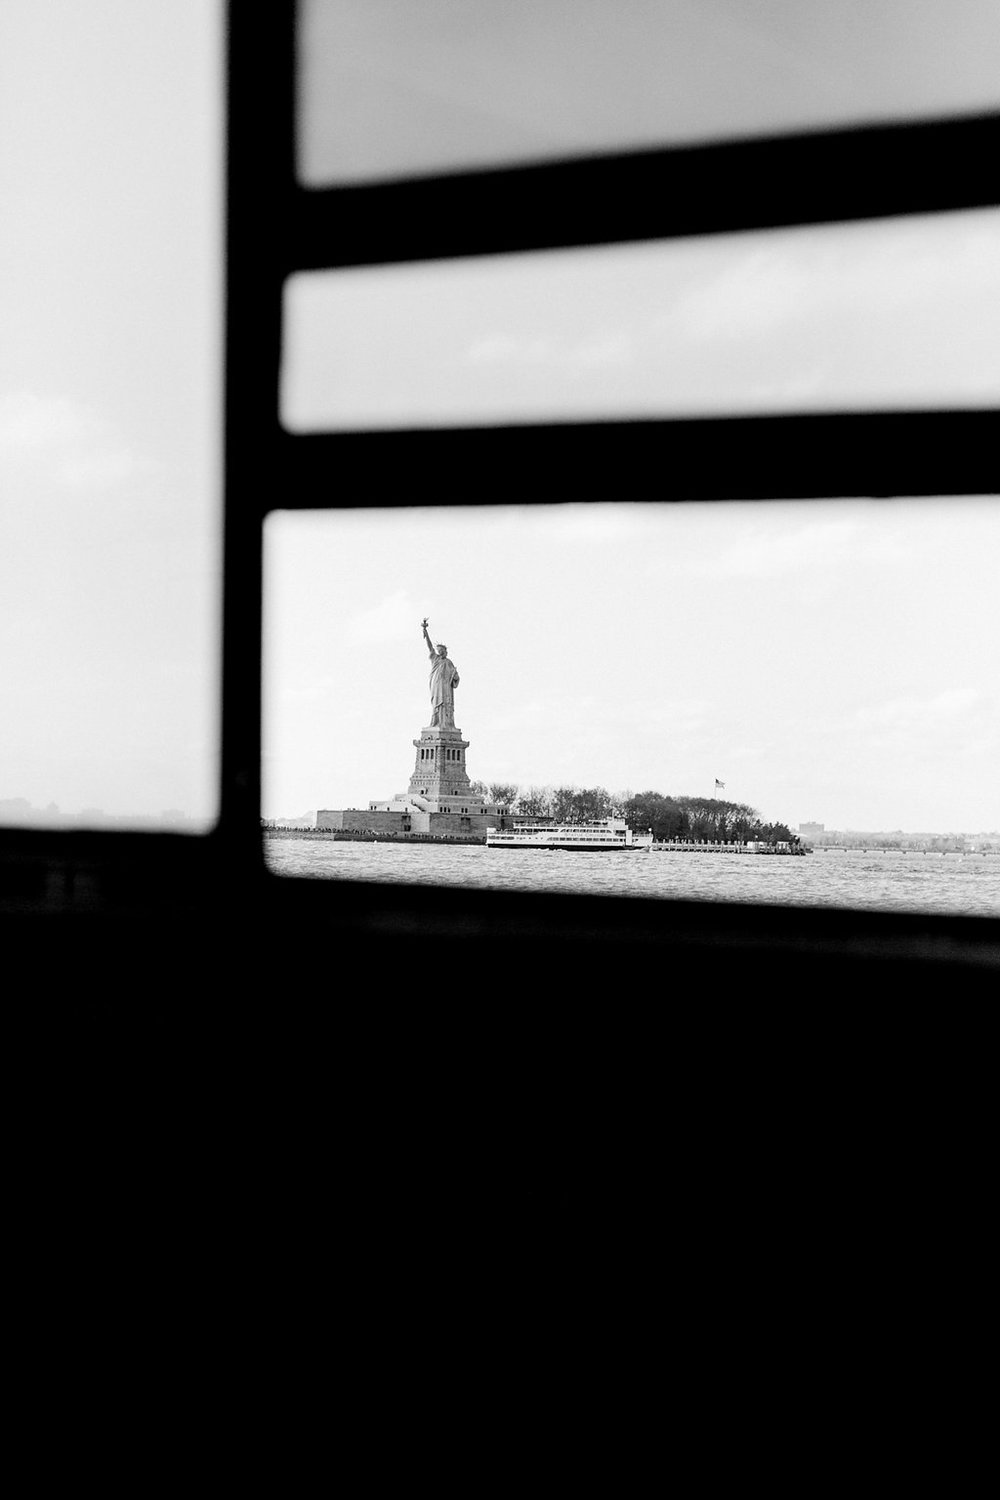 New-York-BW-405.jpg